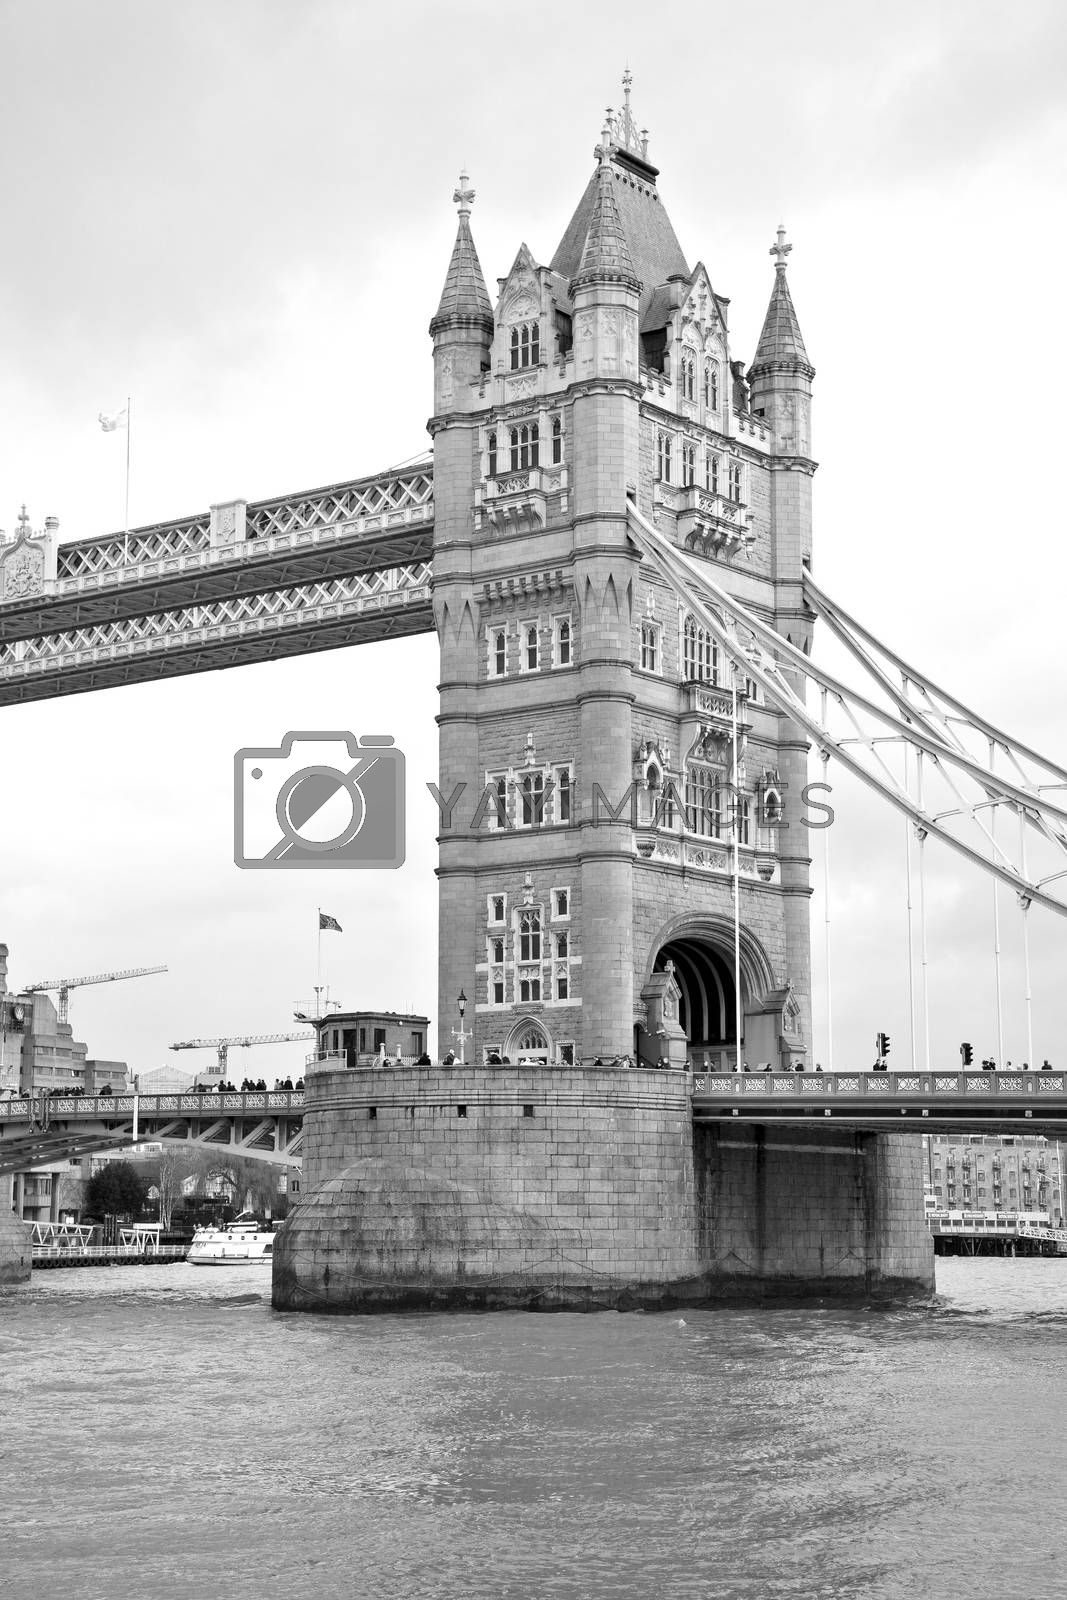 london tower in england old bridge and the cloudy sky by lkpro